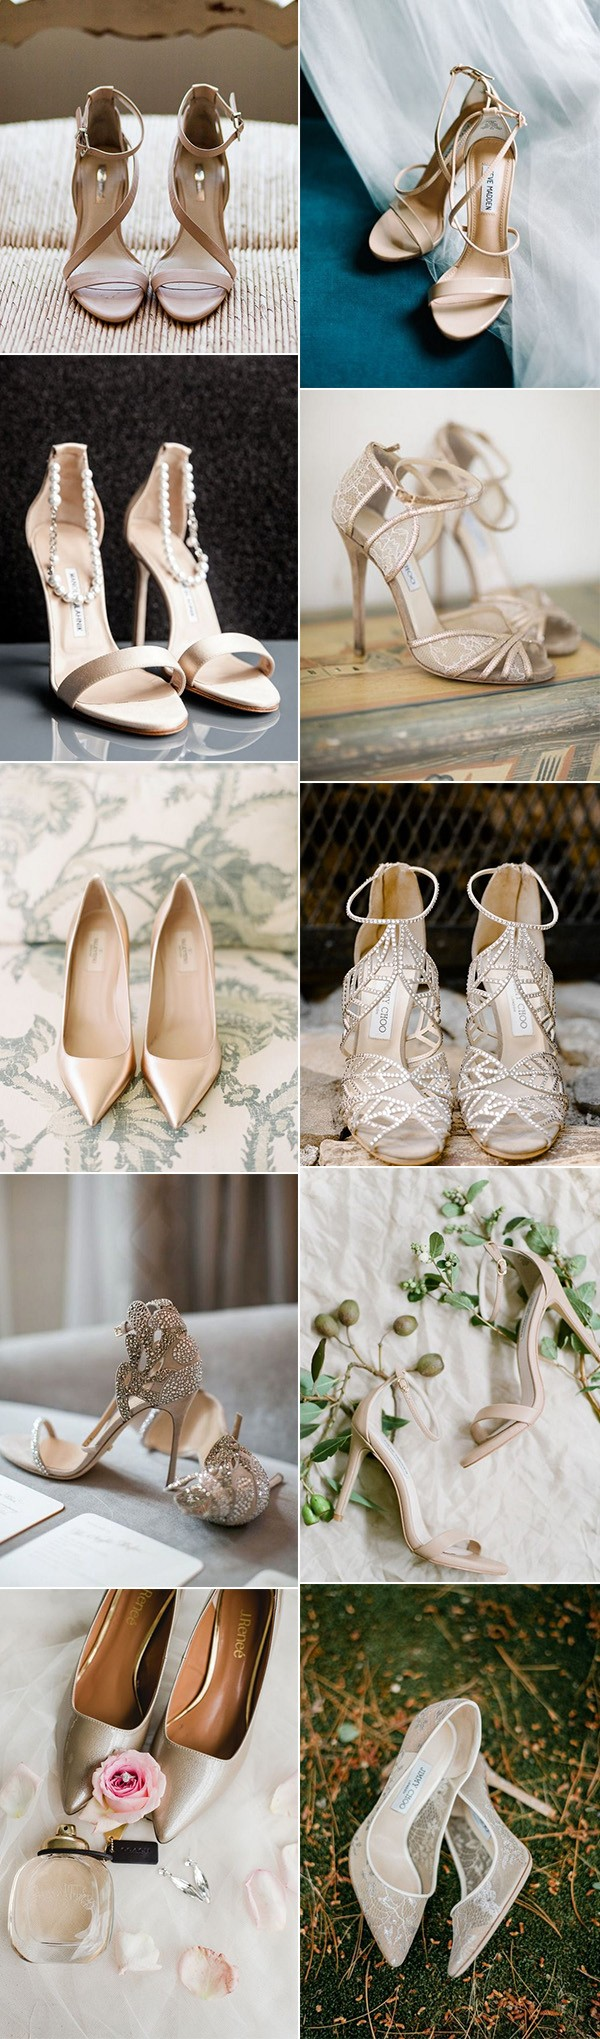 trending neutral elegant wedding shoes